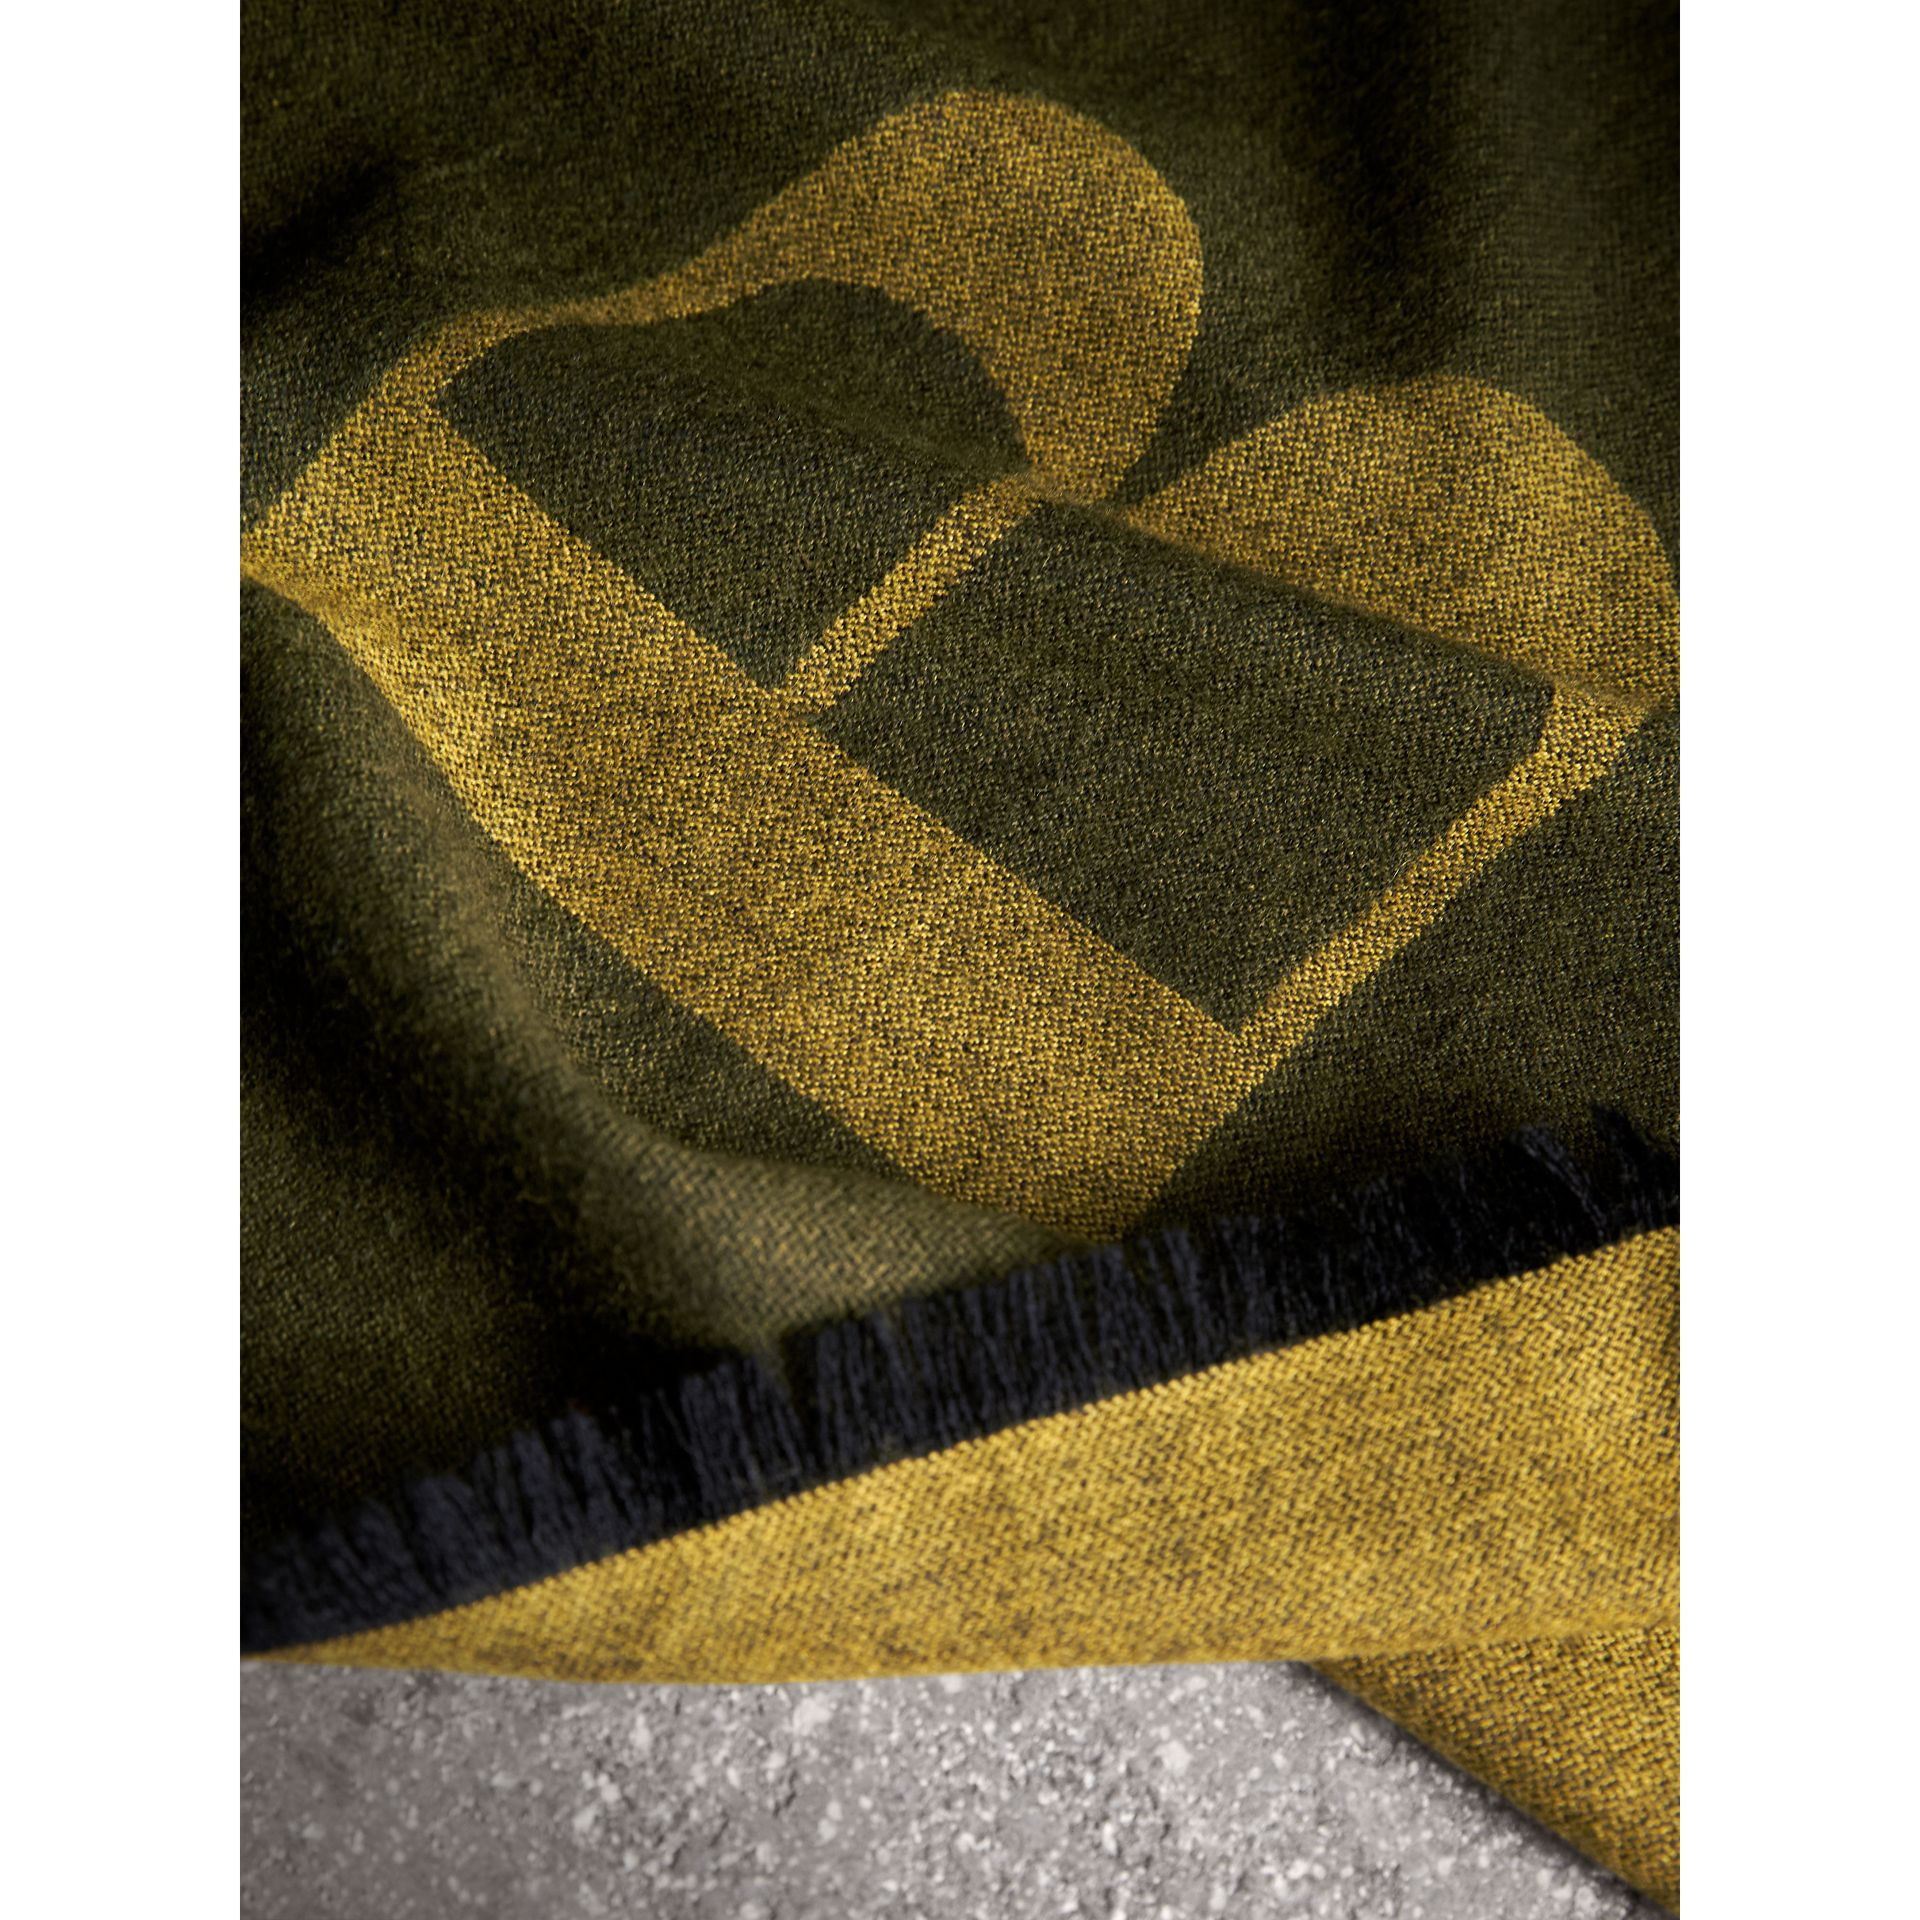 Graphic Print Motif Cashmere Wrap in Olive - Women | Burberry Australia - gallery image 2